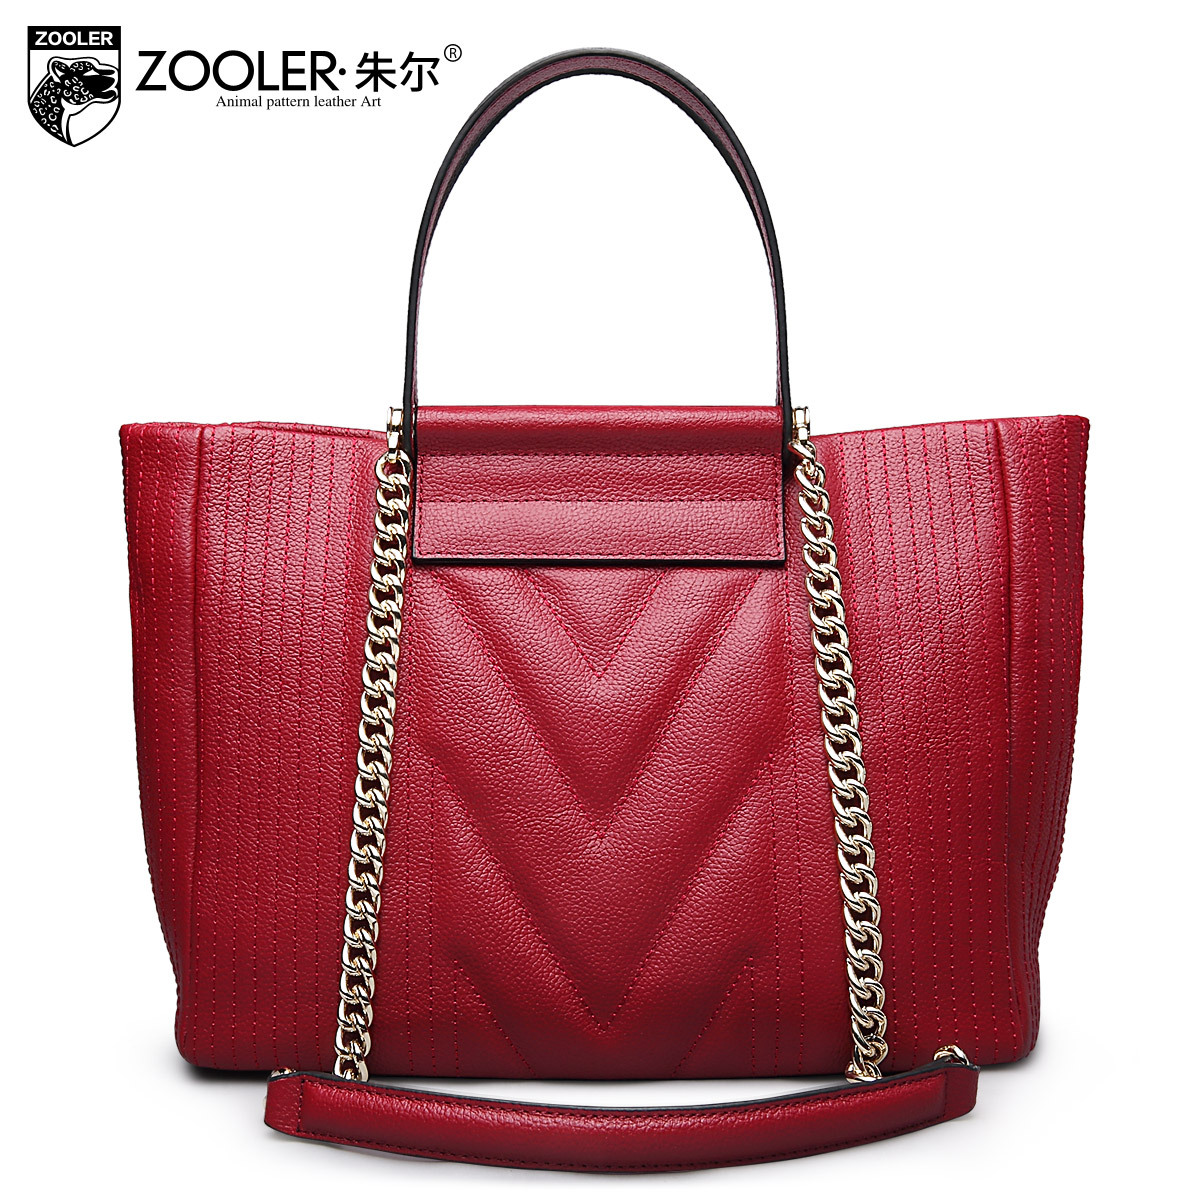 ZOOLER Brand Fashion Red Genuine Leather Handbag Shoulder Tote Bag Ladies Large Capacity Chains Shoulder Bags Bolsa Feminina Bag